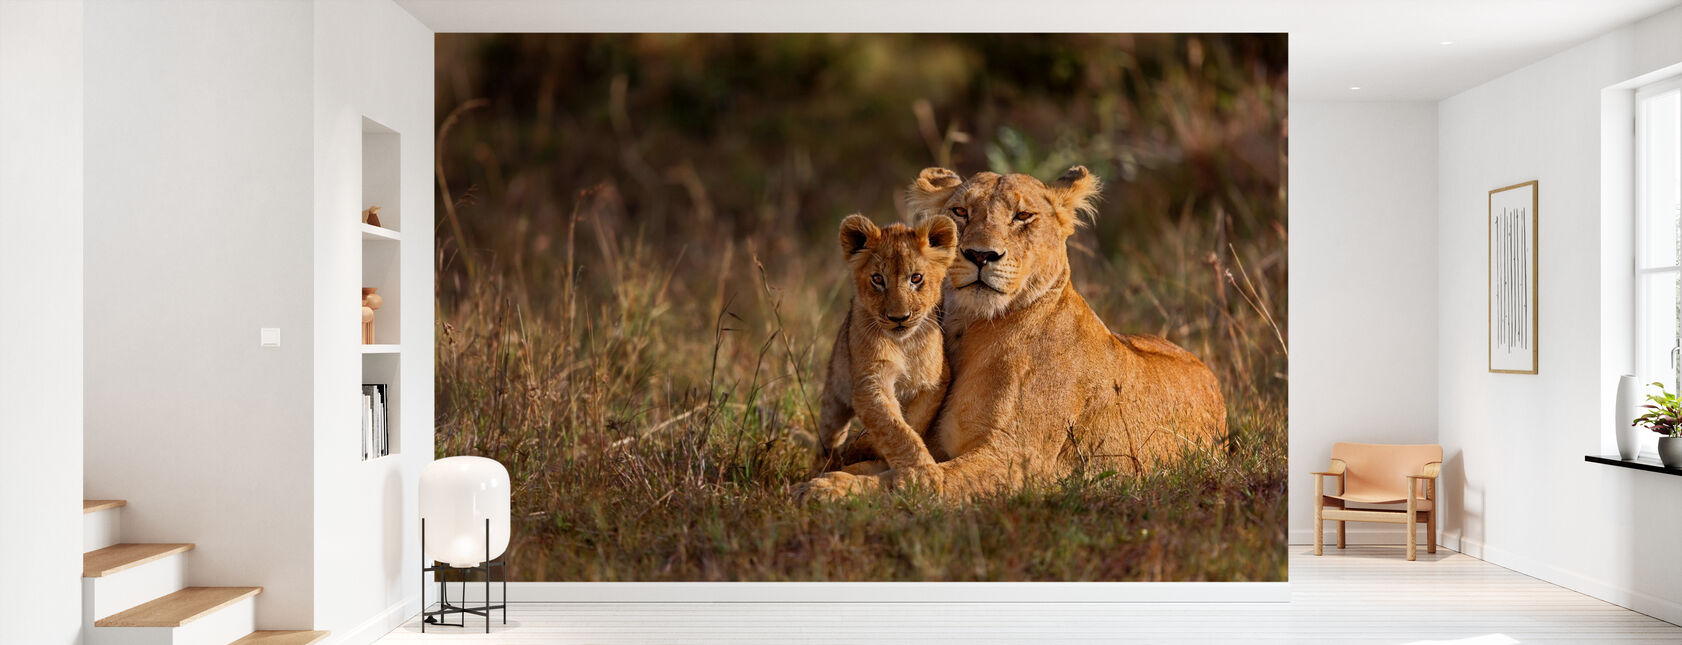 Lion Mother and Cub - Wallpaper - Hallway